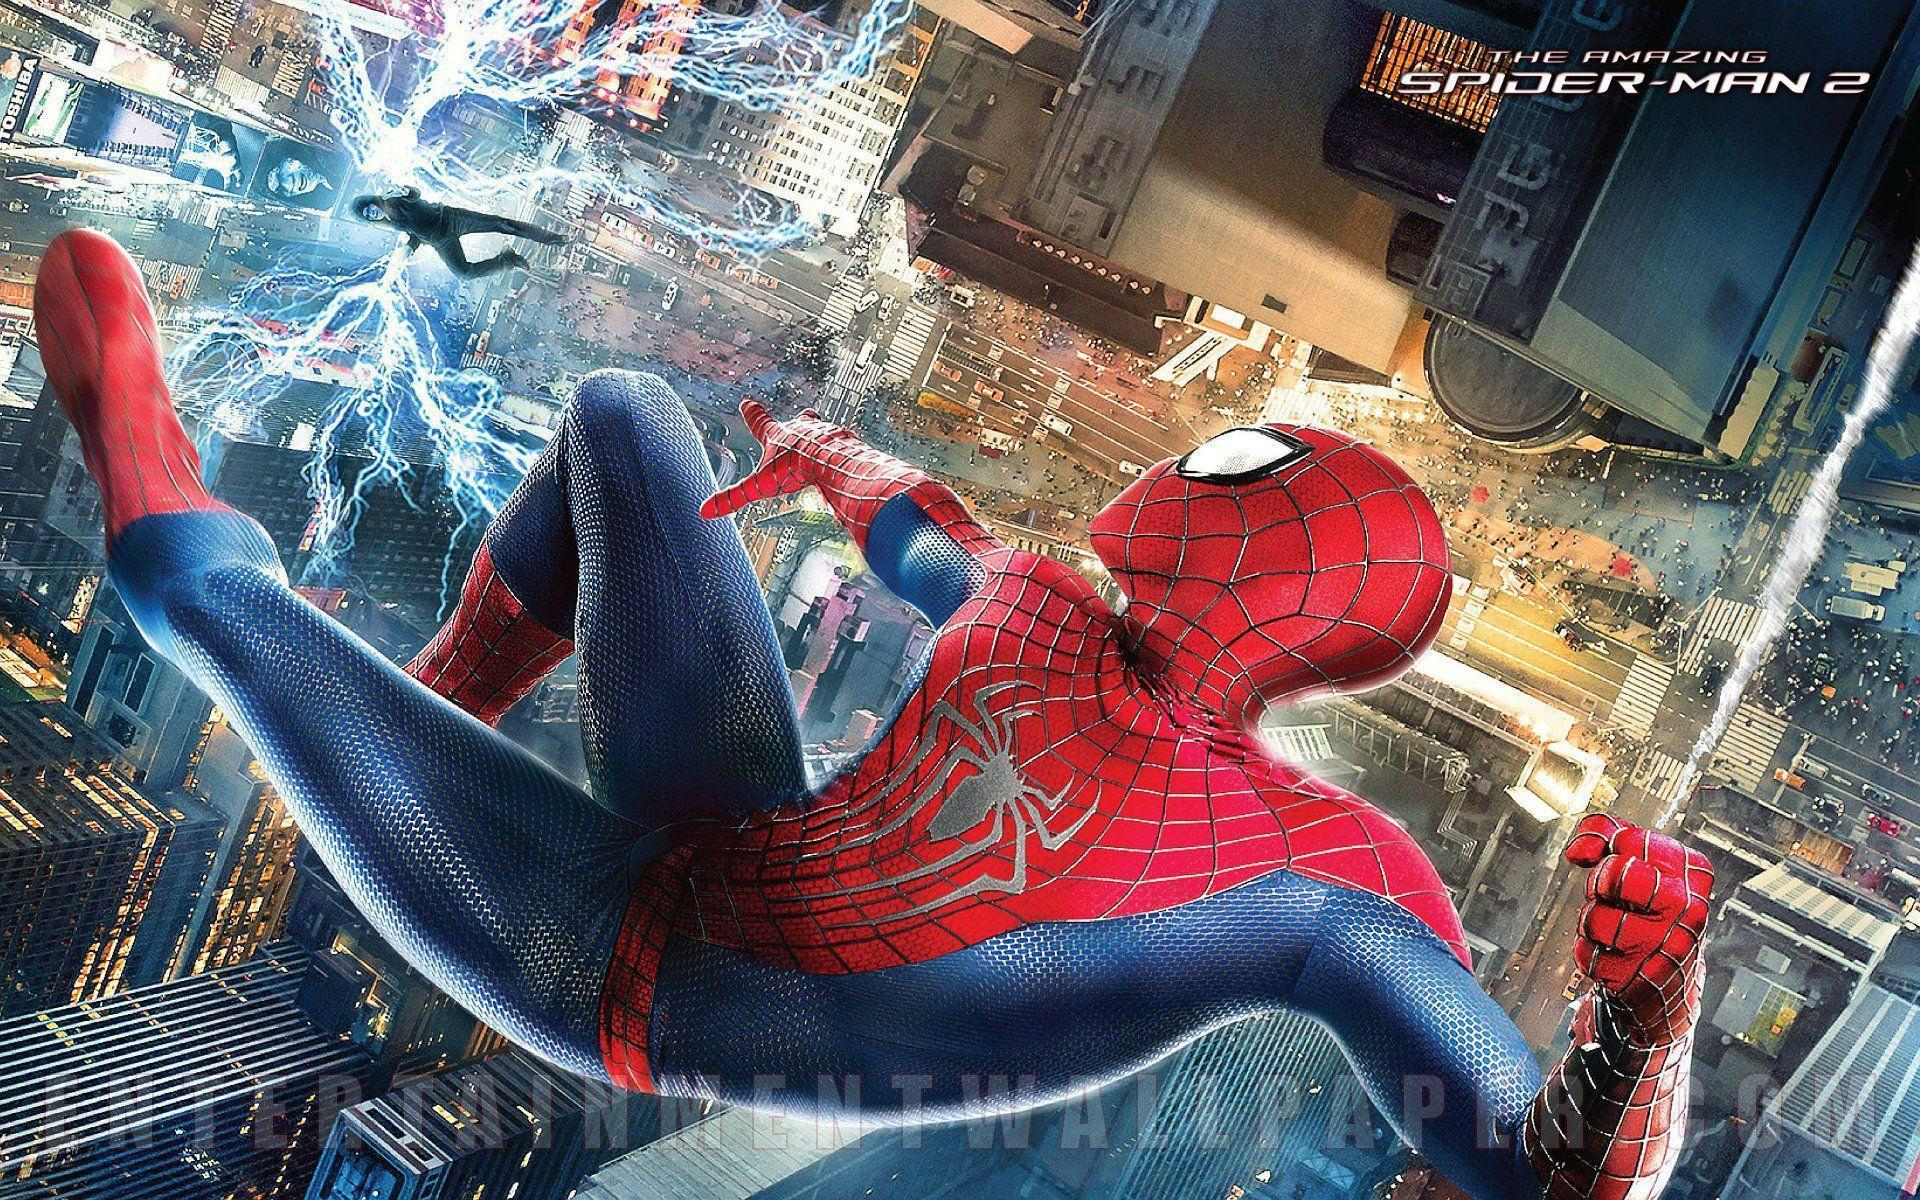 The amazing spider man 2 wallpapers wallpaper cave - Spider hd images download ...